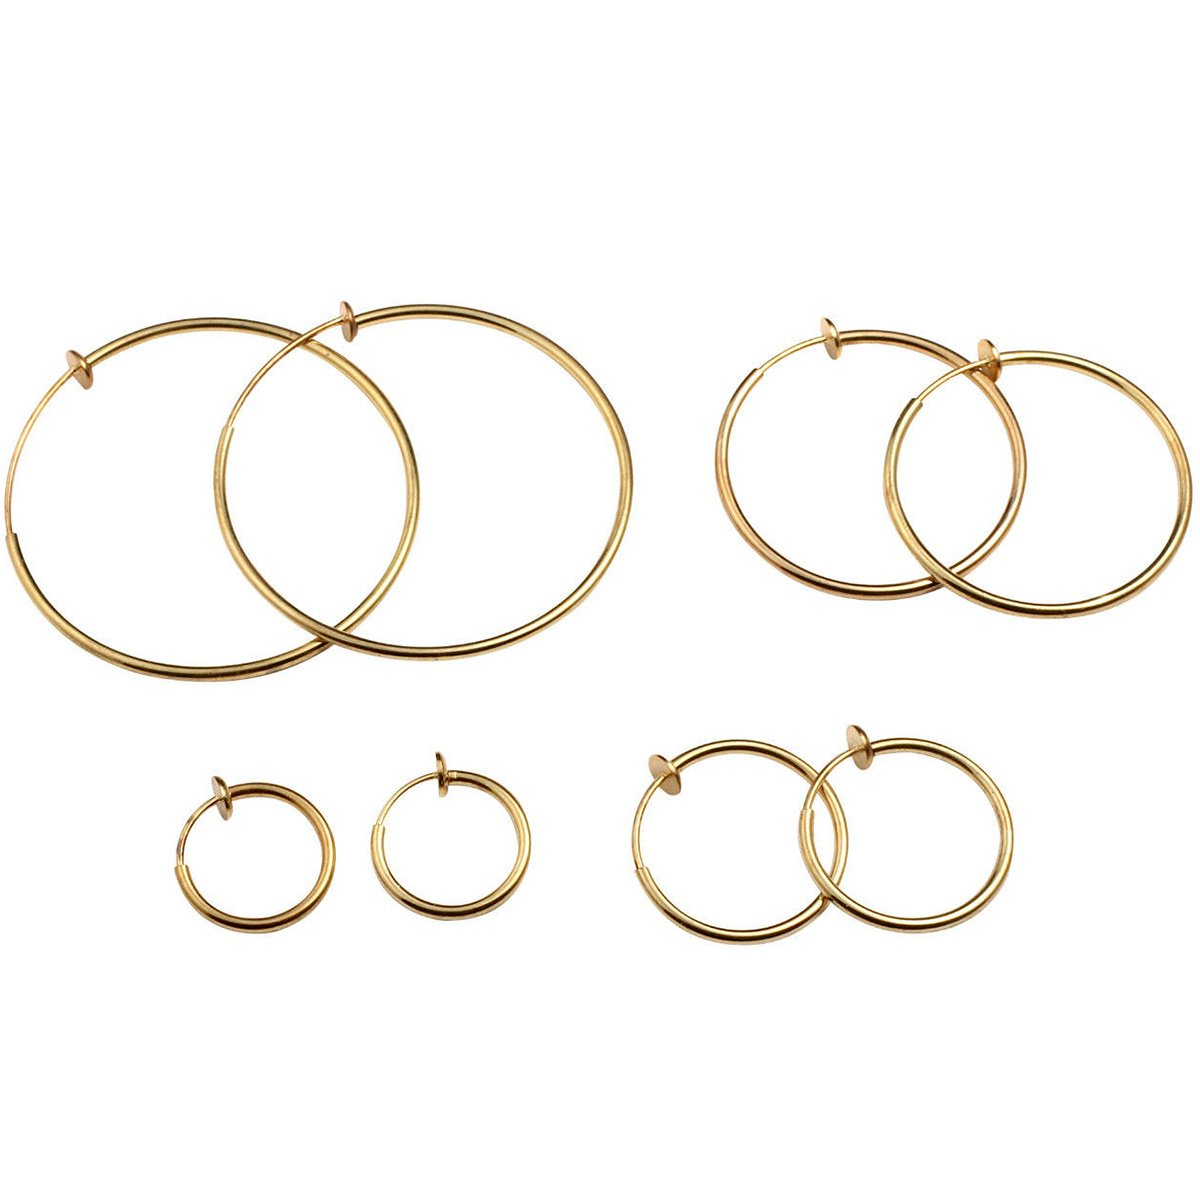 Gold or Silver Spring Hoop Clip-On Earrings Set of 4 - DeluxeAdultCostumes.com